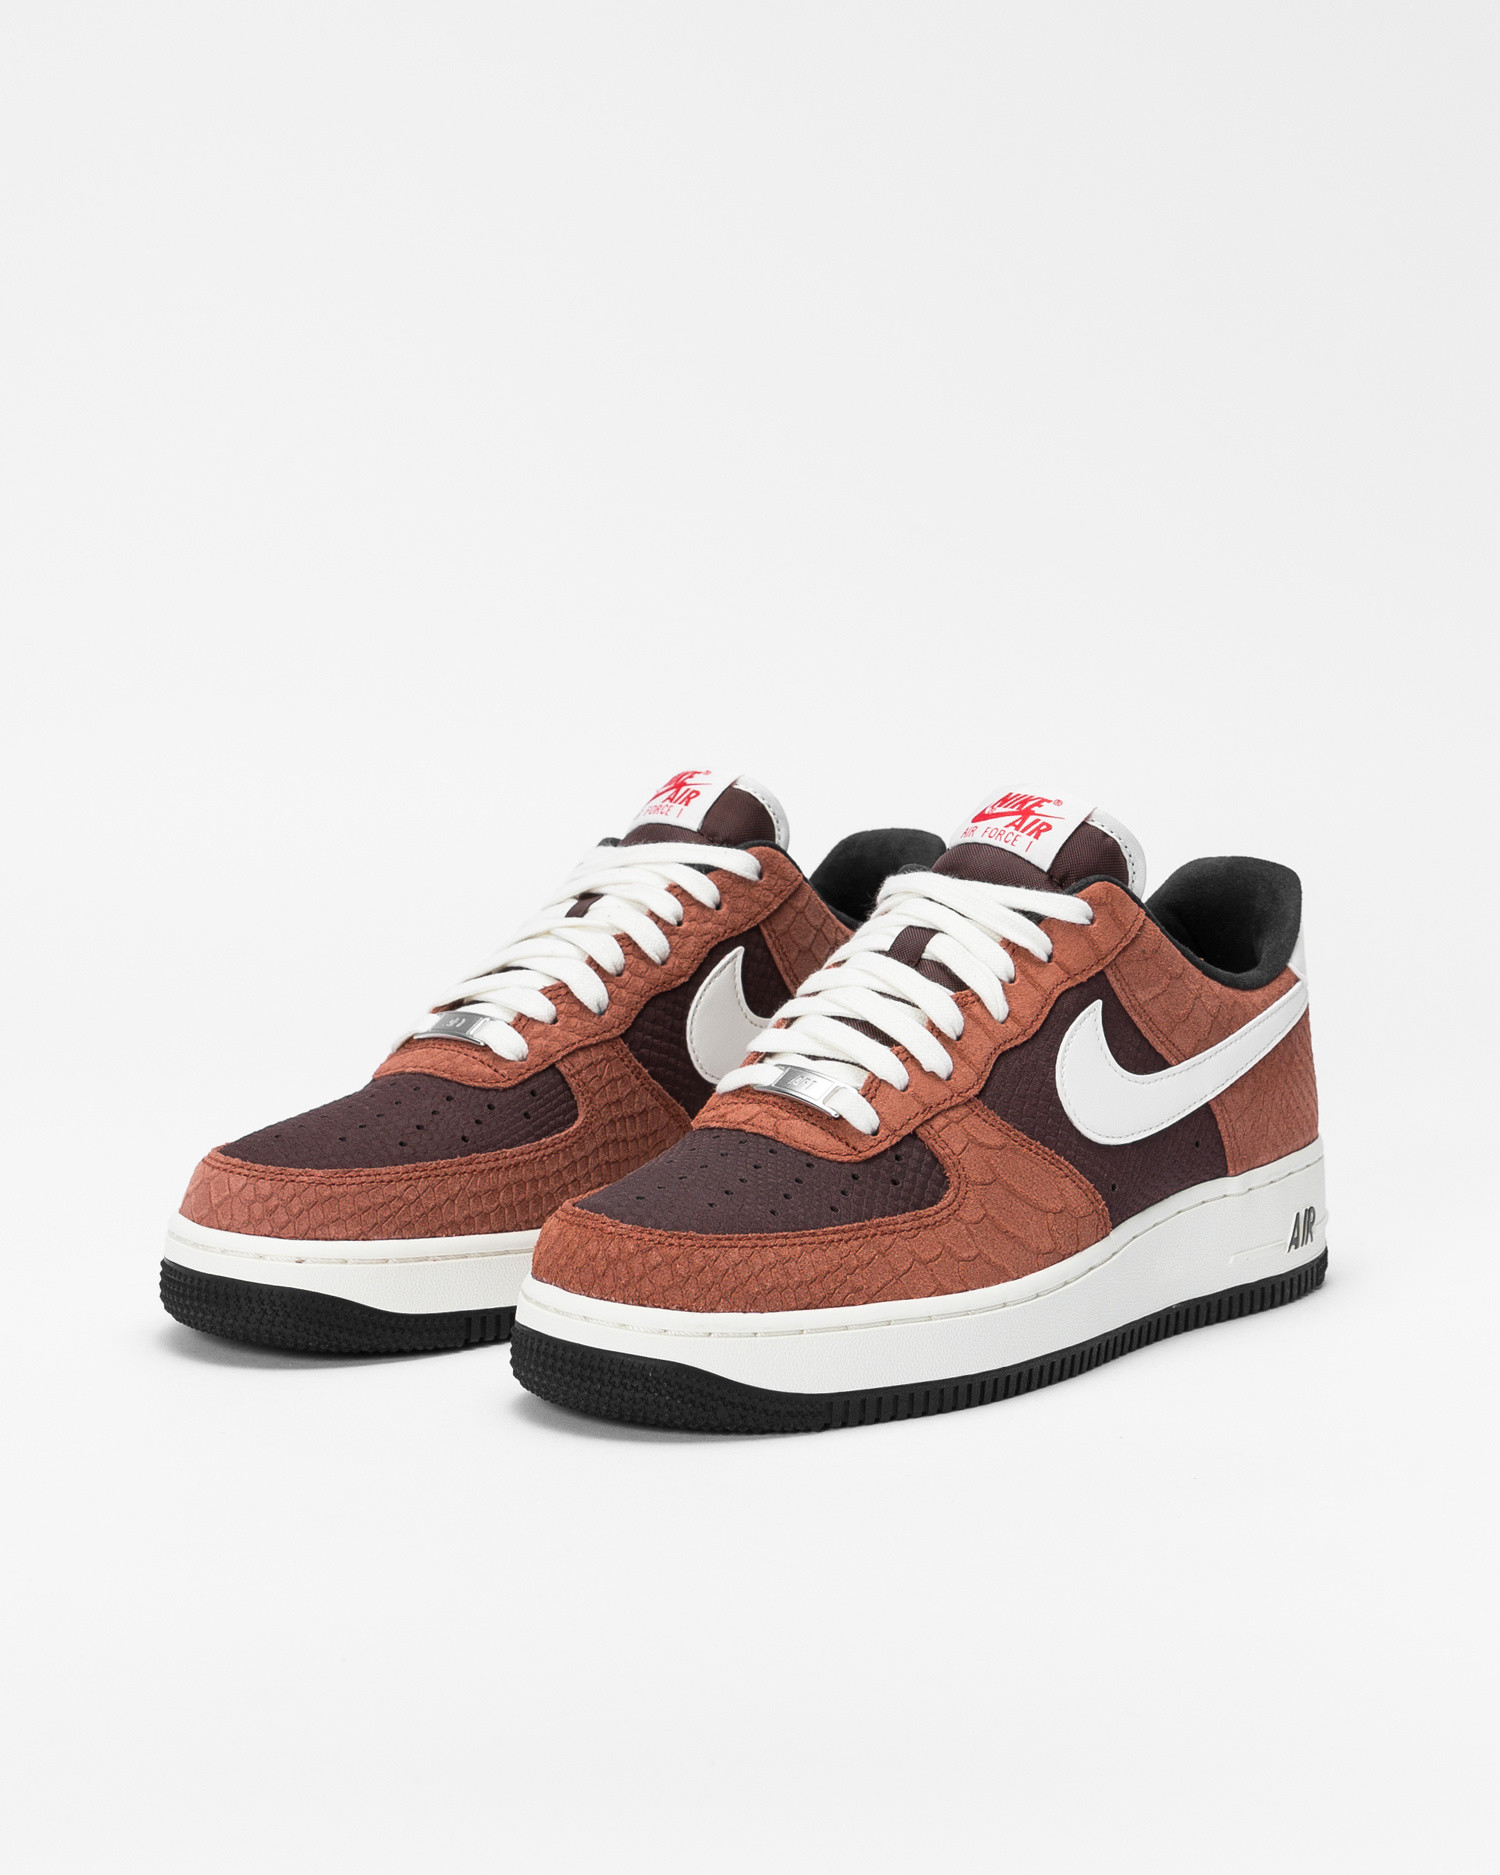 Nike Air Force 1 prm Red Bark/sail-earth-university red